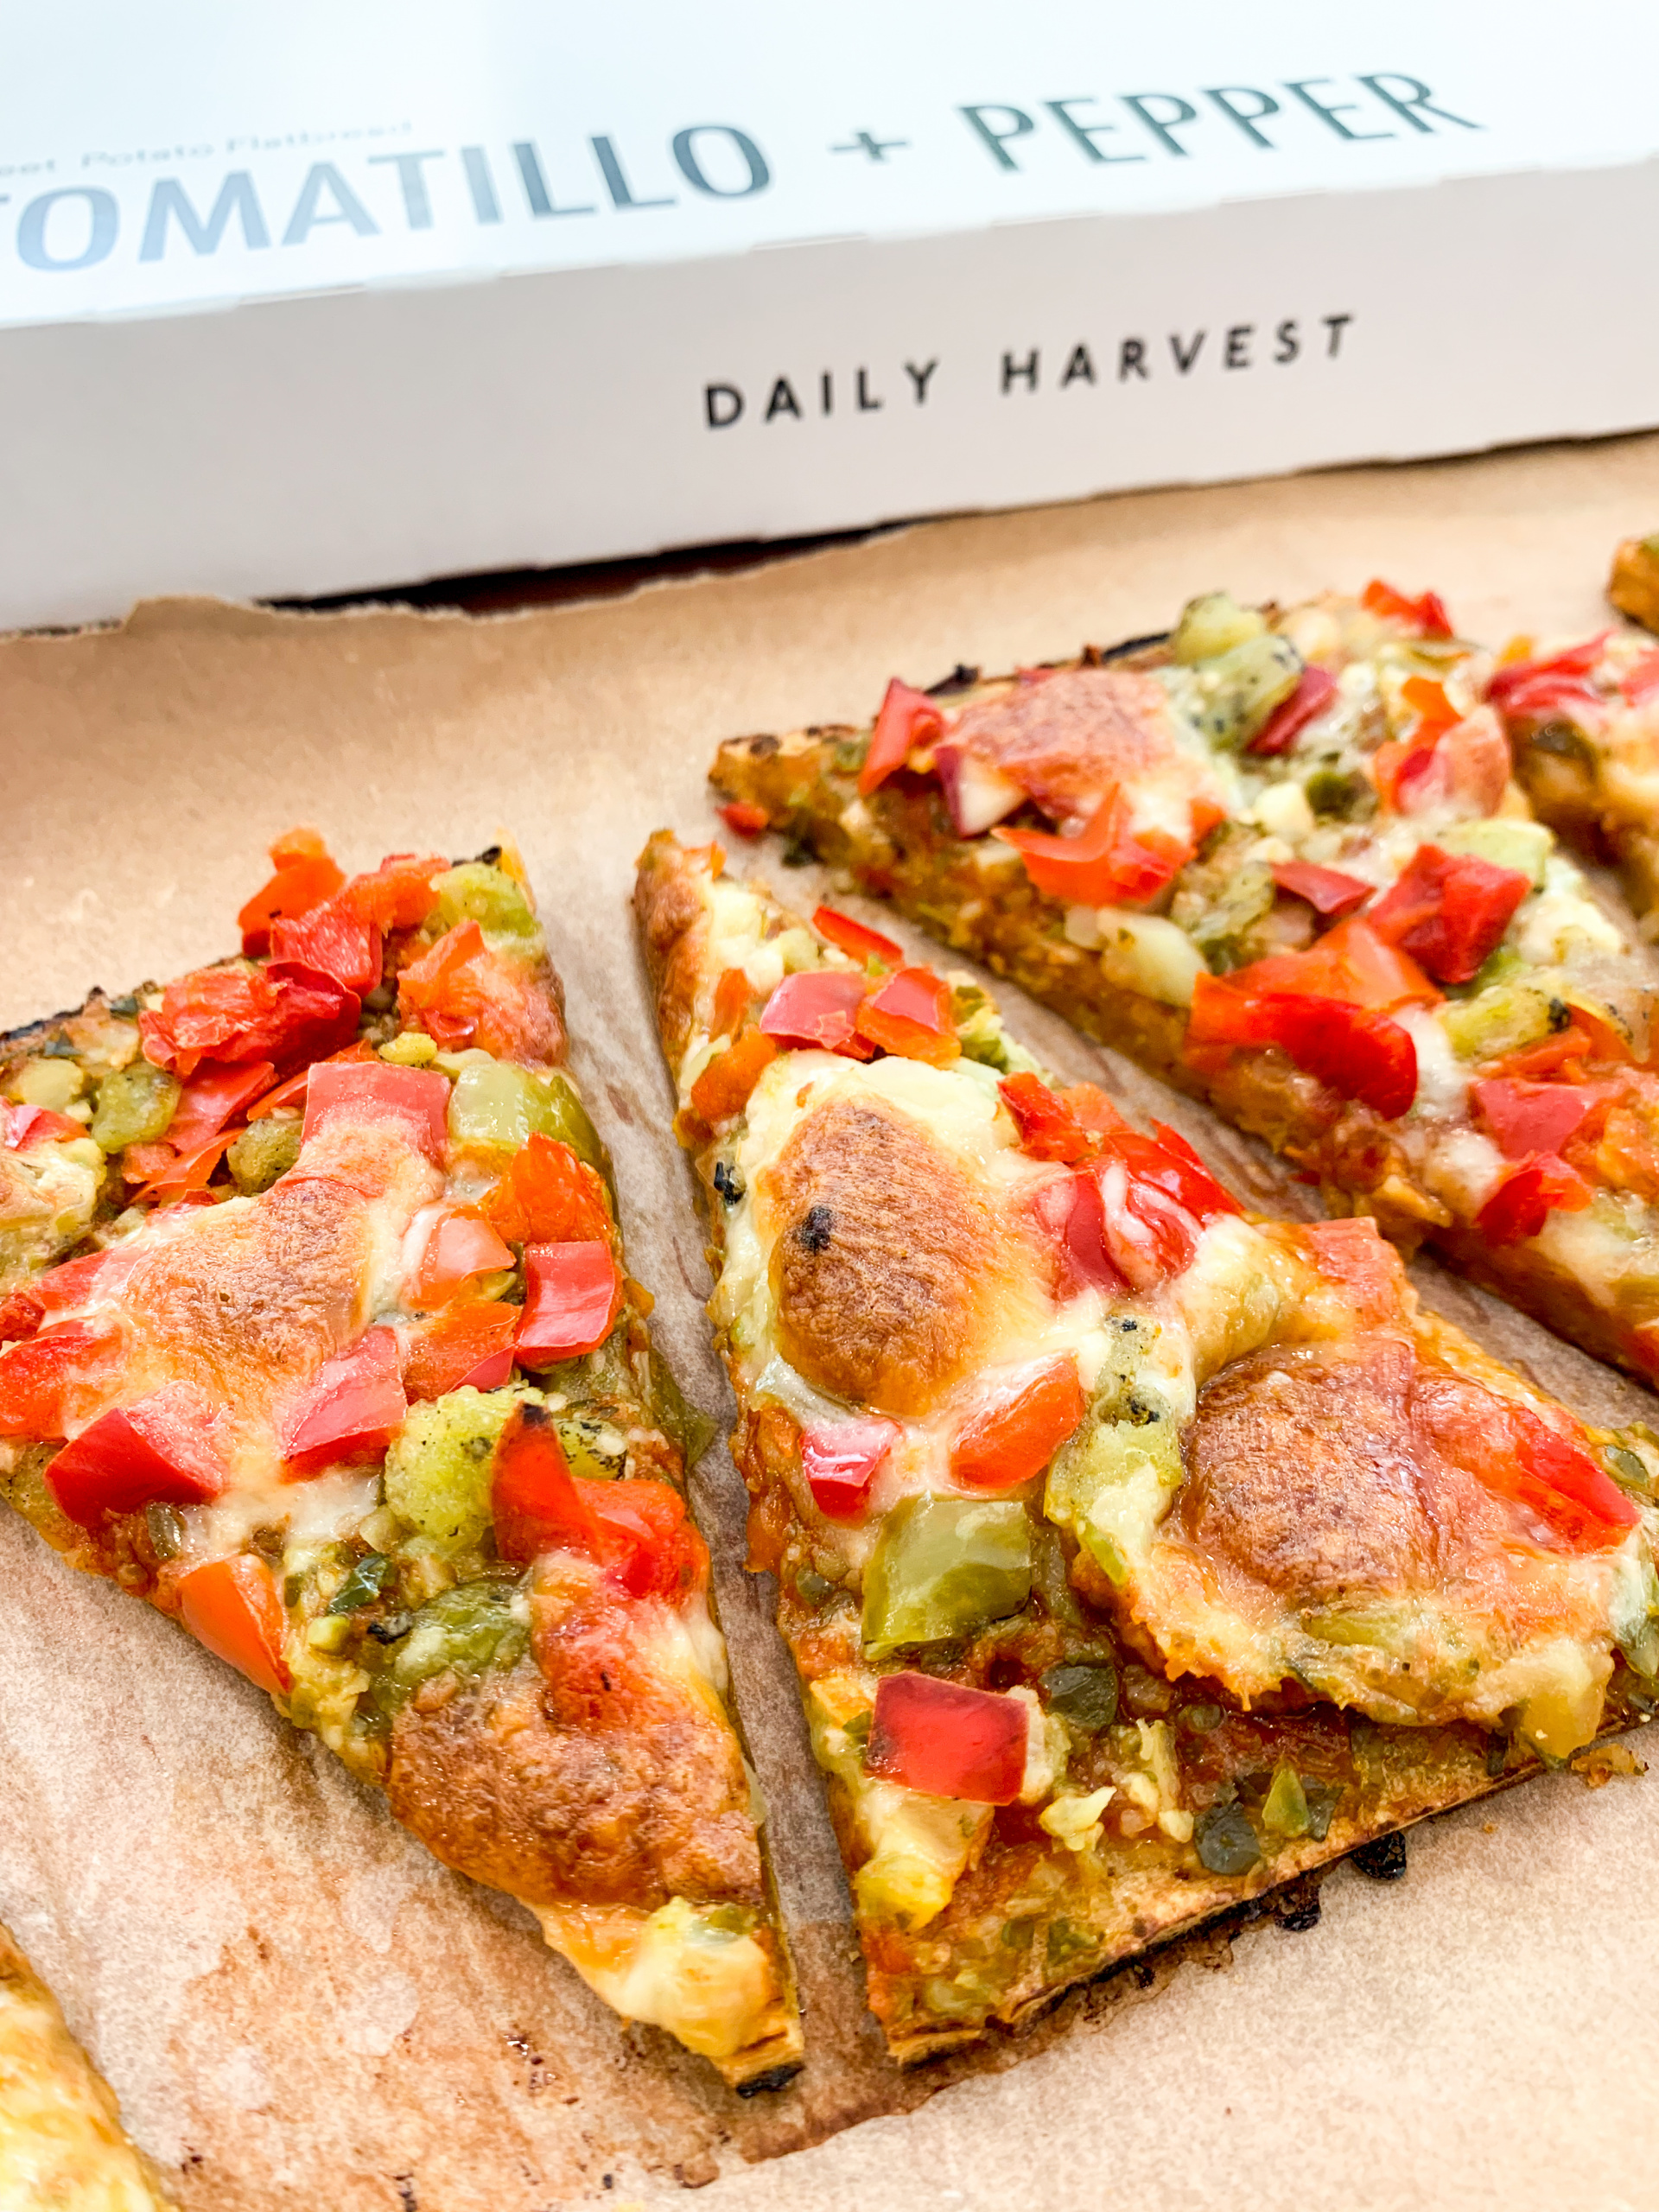 Why Our Family Loves Daily Harvest (And Our Favorites!)